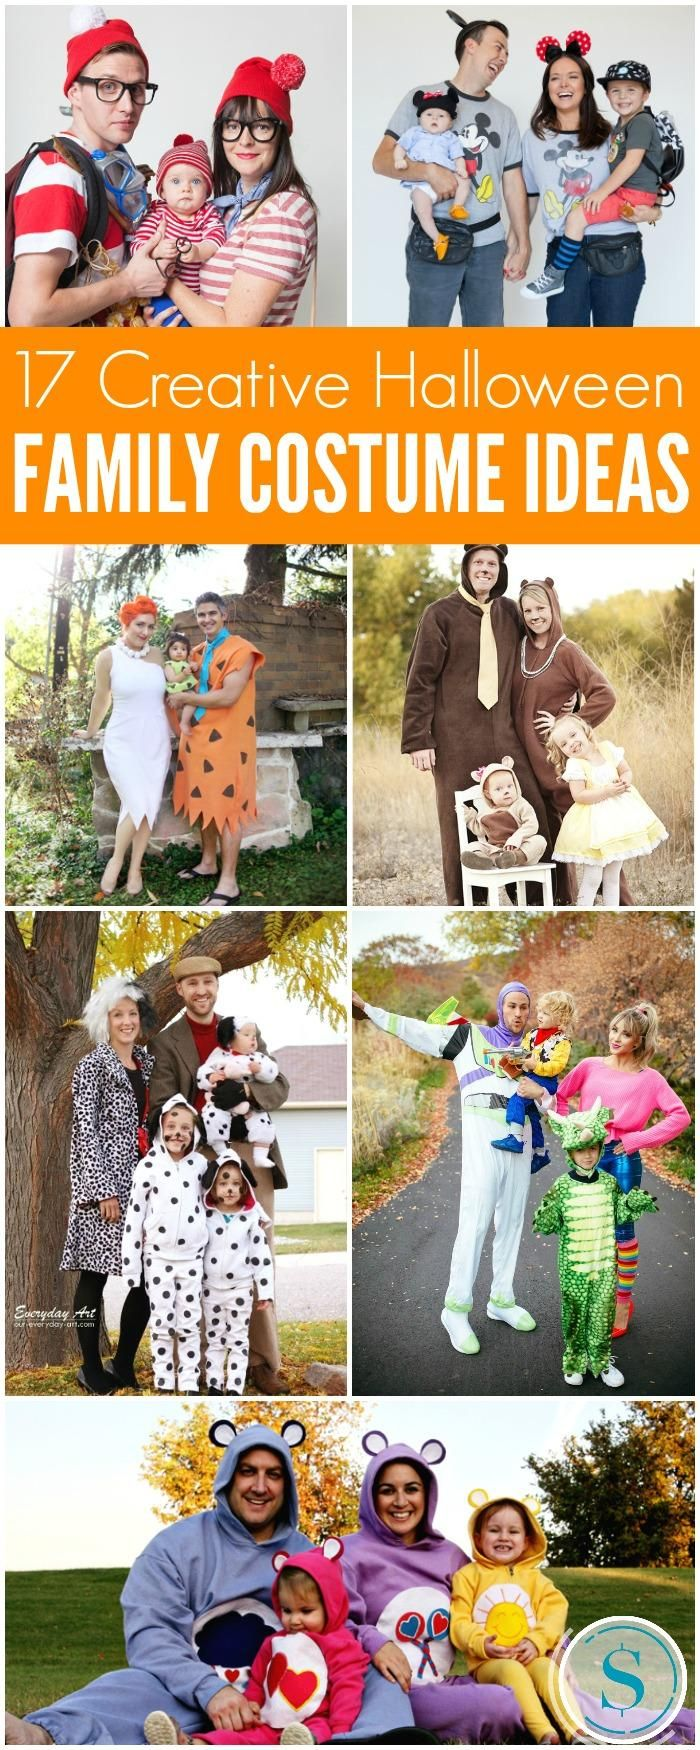 Family Halloween Costume Ideas including DIY Family Halloween Costumes, Group Halloween Costumes, Couple Halloween Costumes and Store Bought Costumes!